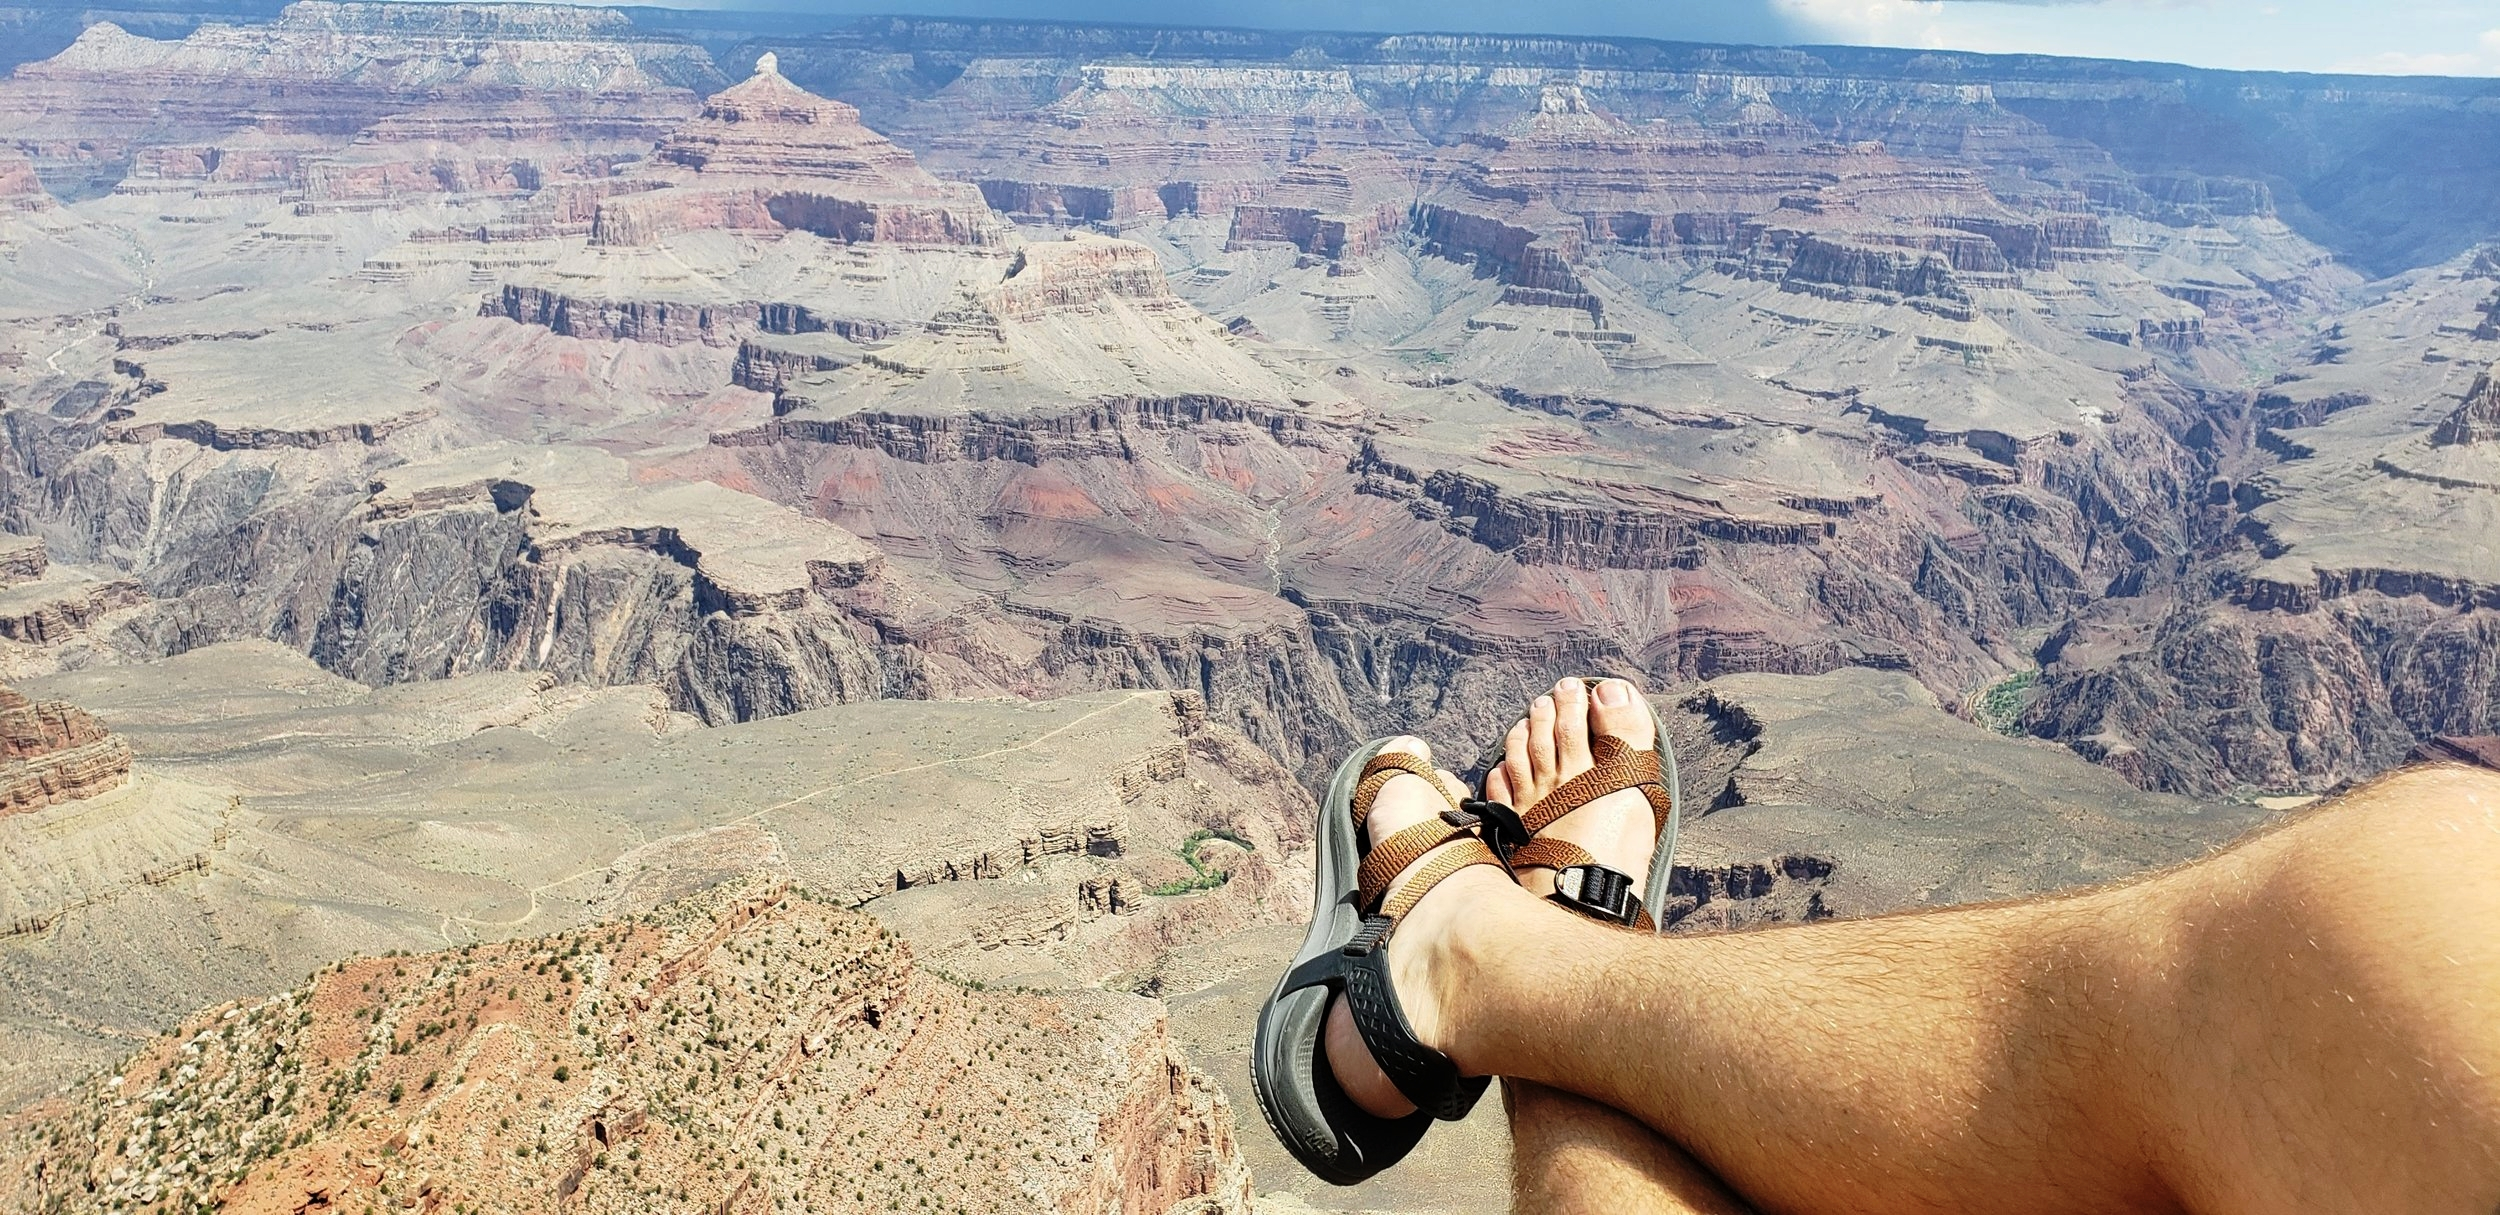 Another free vacation. Grand Canyon free entrance thanks to the pass they offer to Military